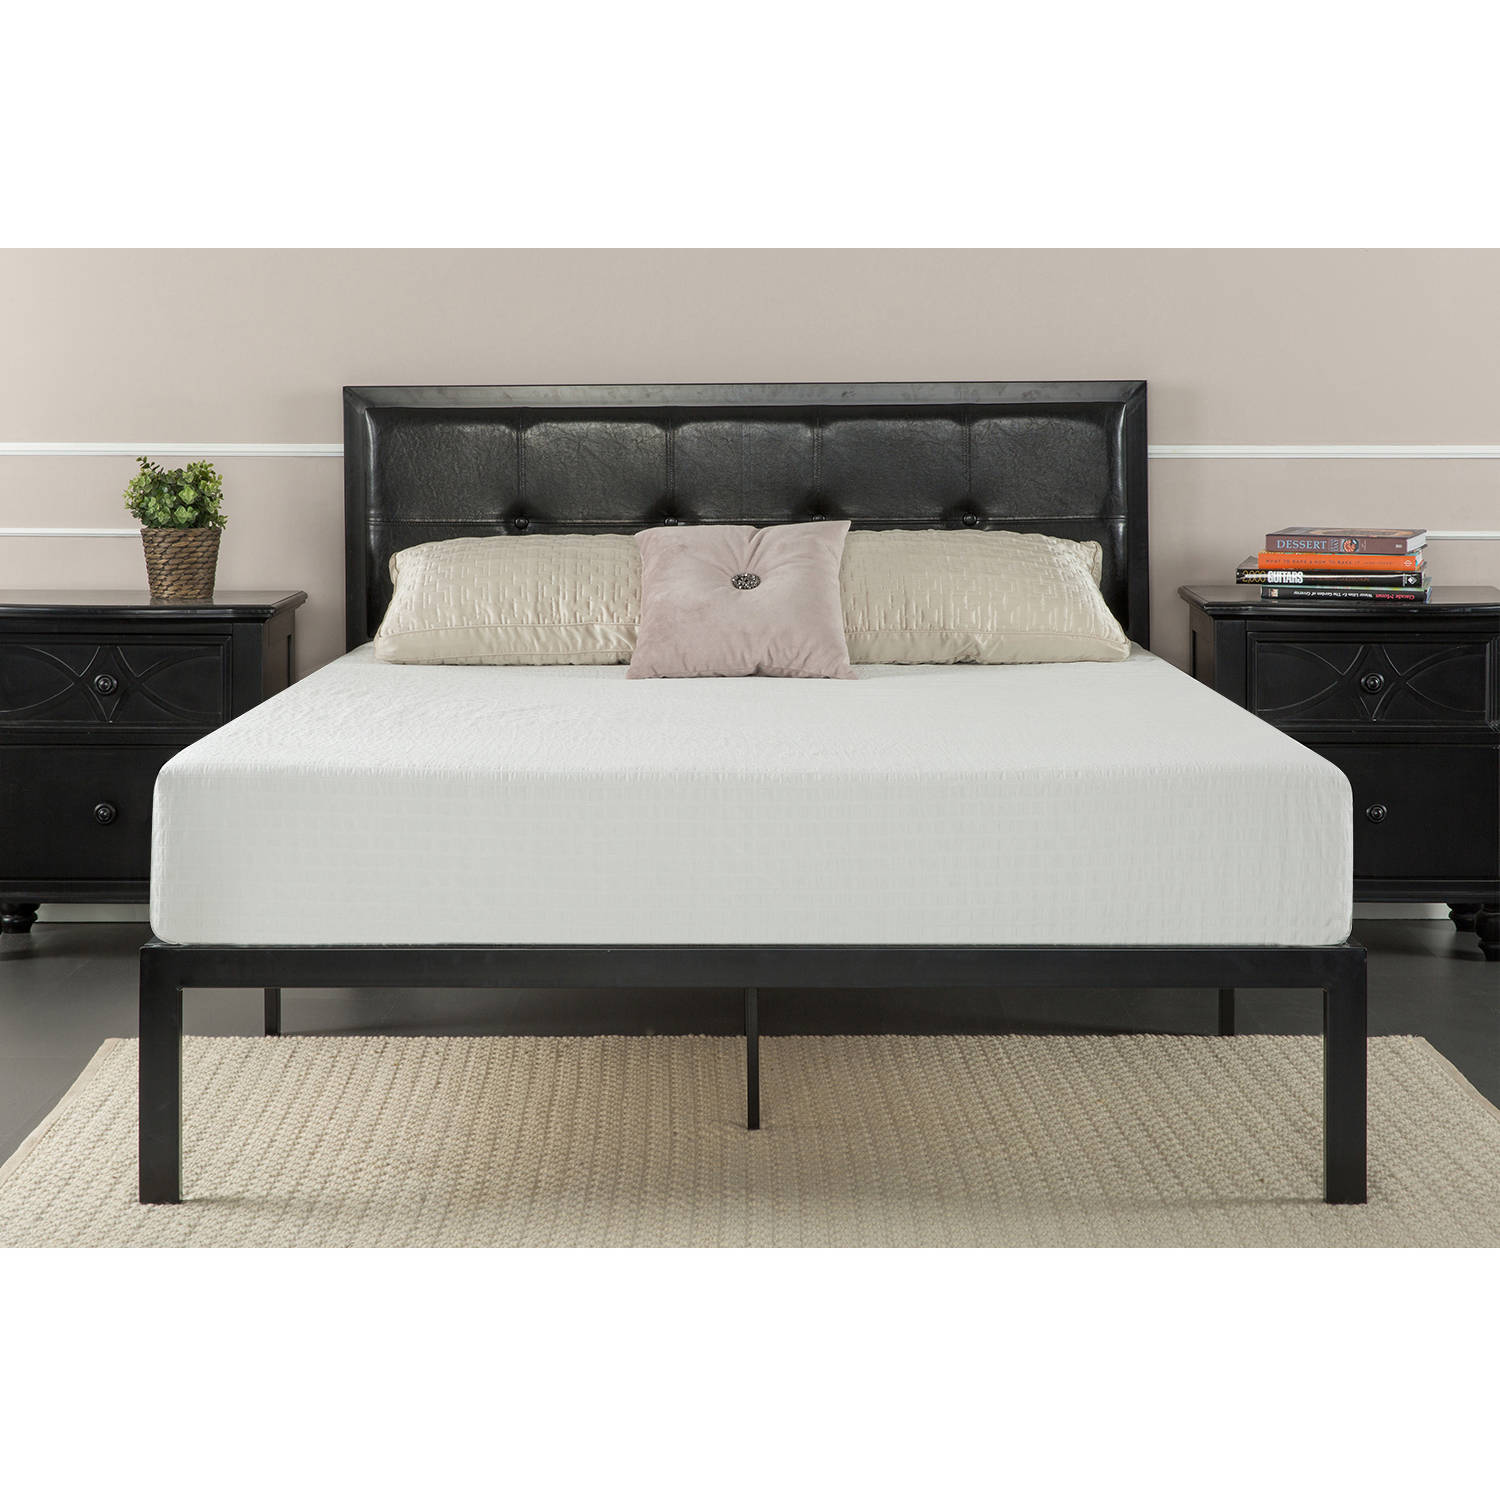 Zinus Faux Leather Classic Platform Bed with Steel Support Slats, Multiple Sizes